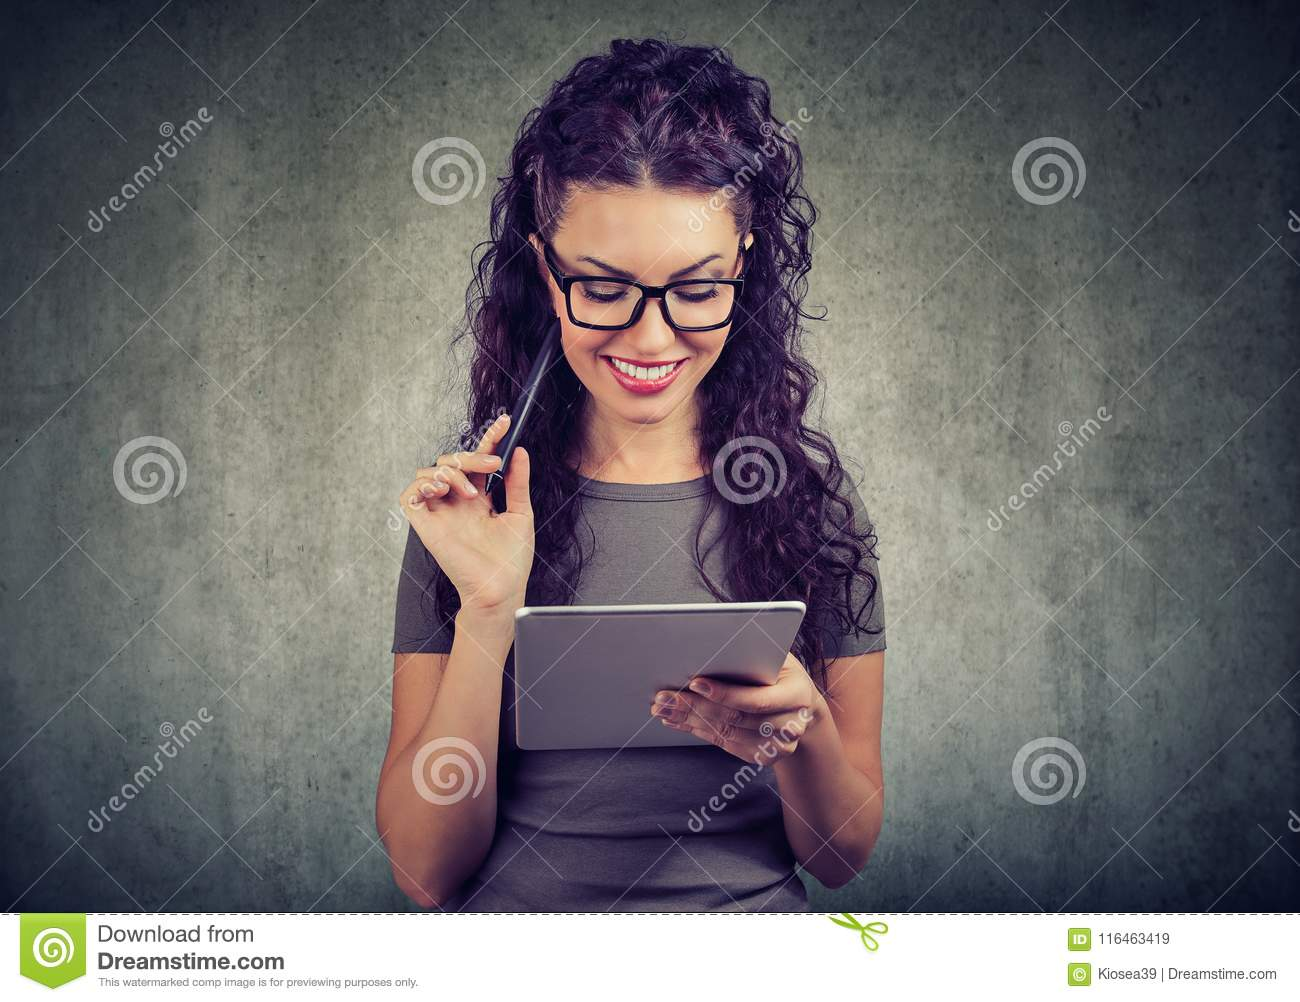 Happy woman with tablet computer and pen has an idea